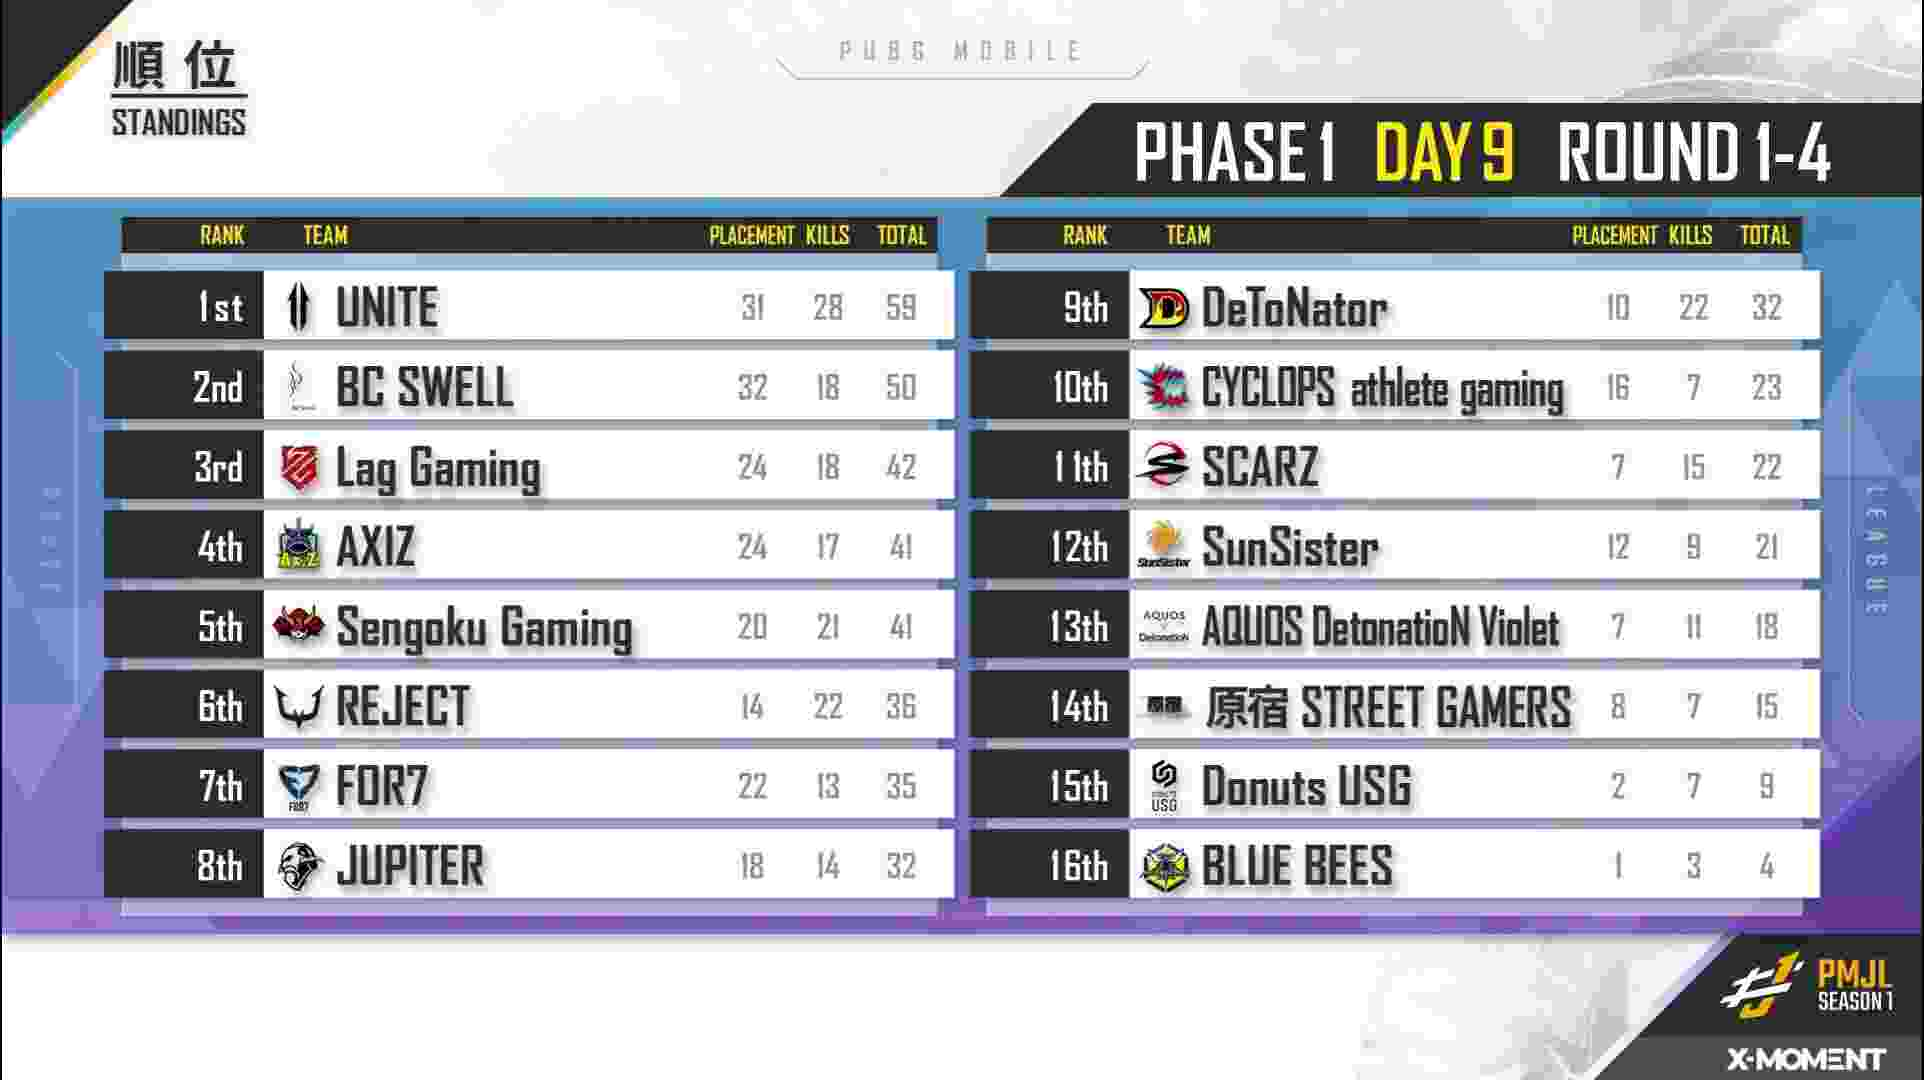 PMJL Season 1: Phase 1 Day 9 Overall Standings